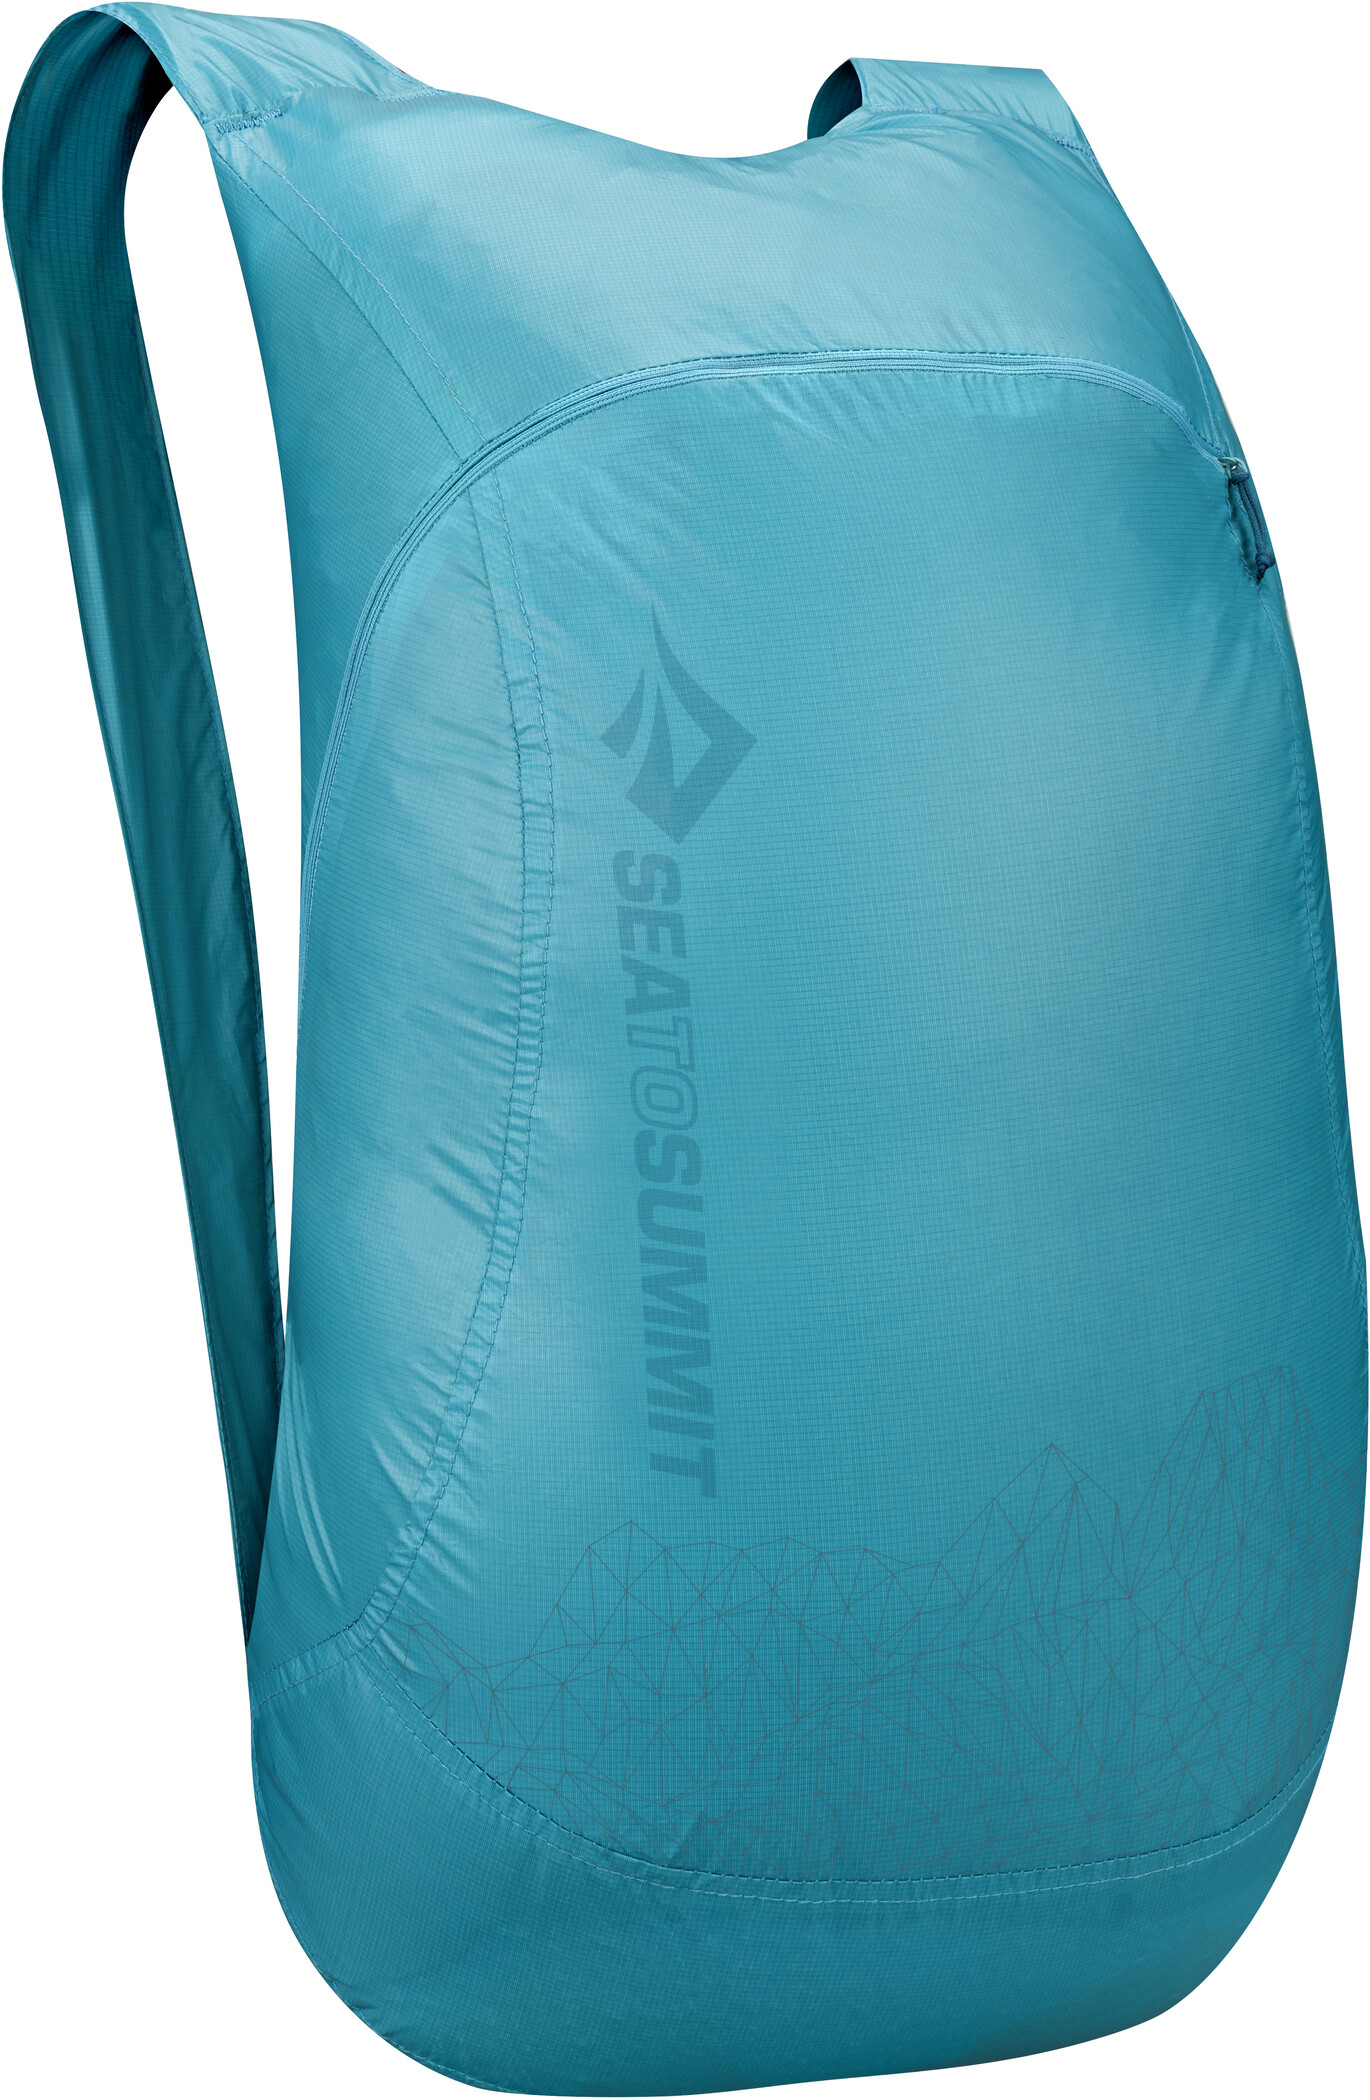 Sea to Summit Ultra-Sil Nano Rygsæk, teal (2019) | Travel bags